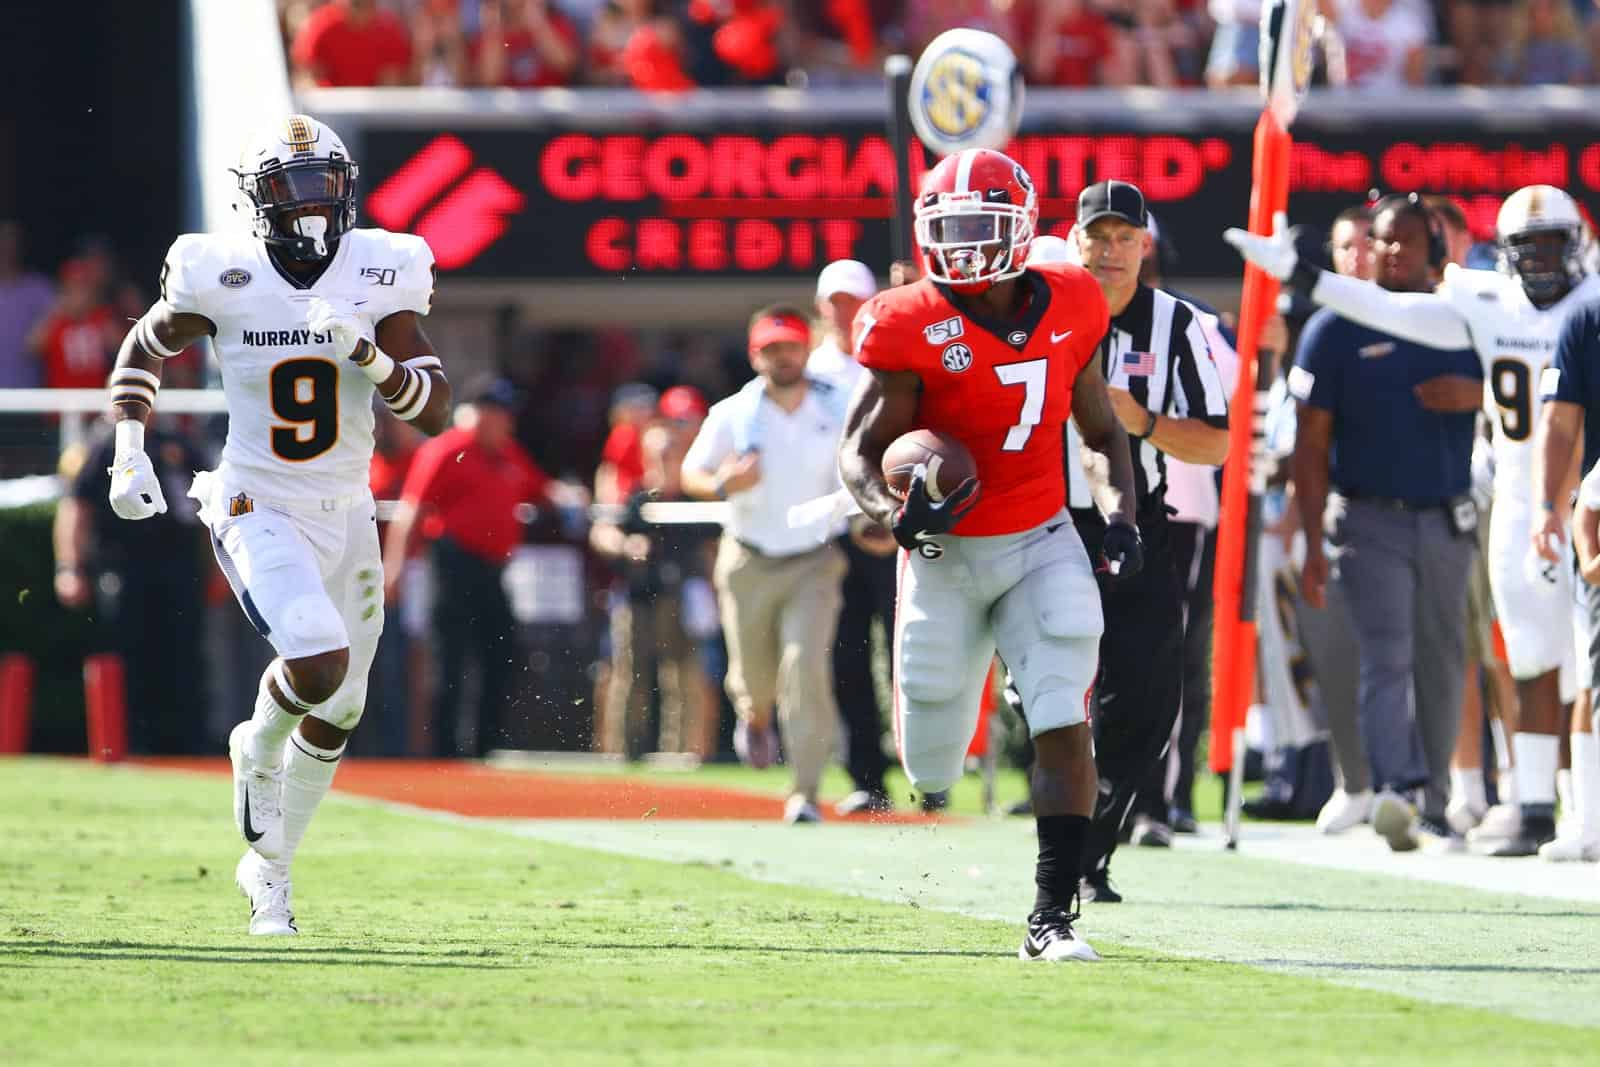 The Georgia Bulldogs are having trouble covering big points spreads.